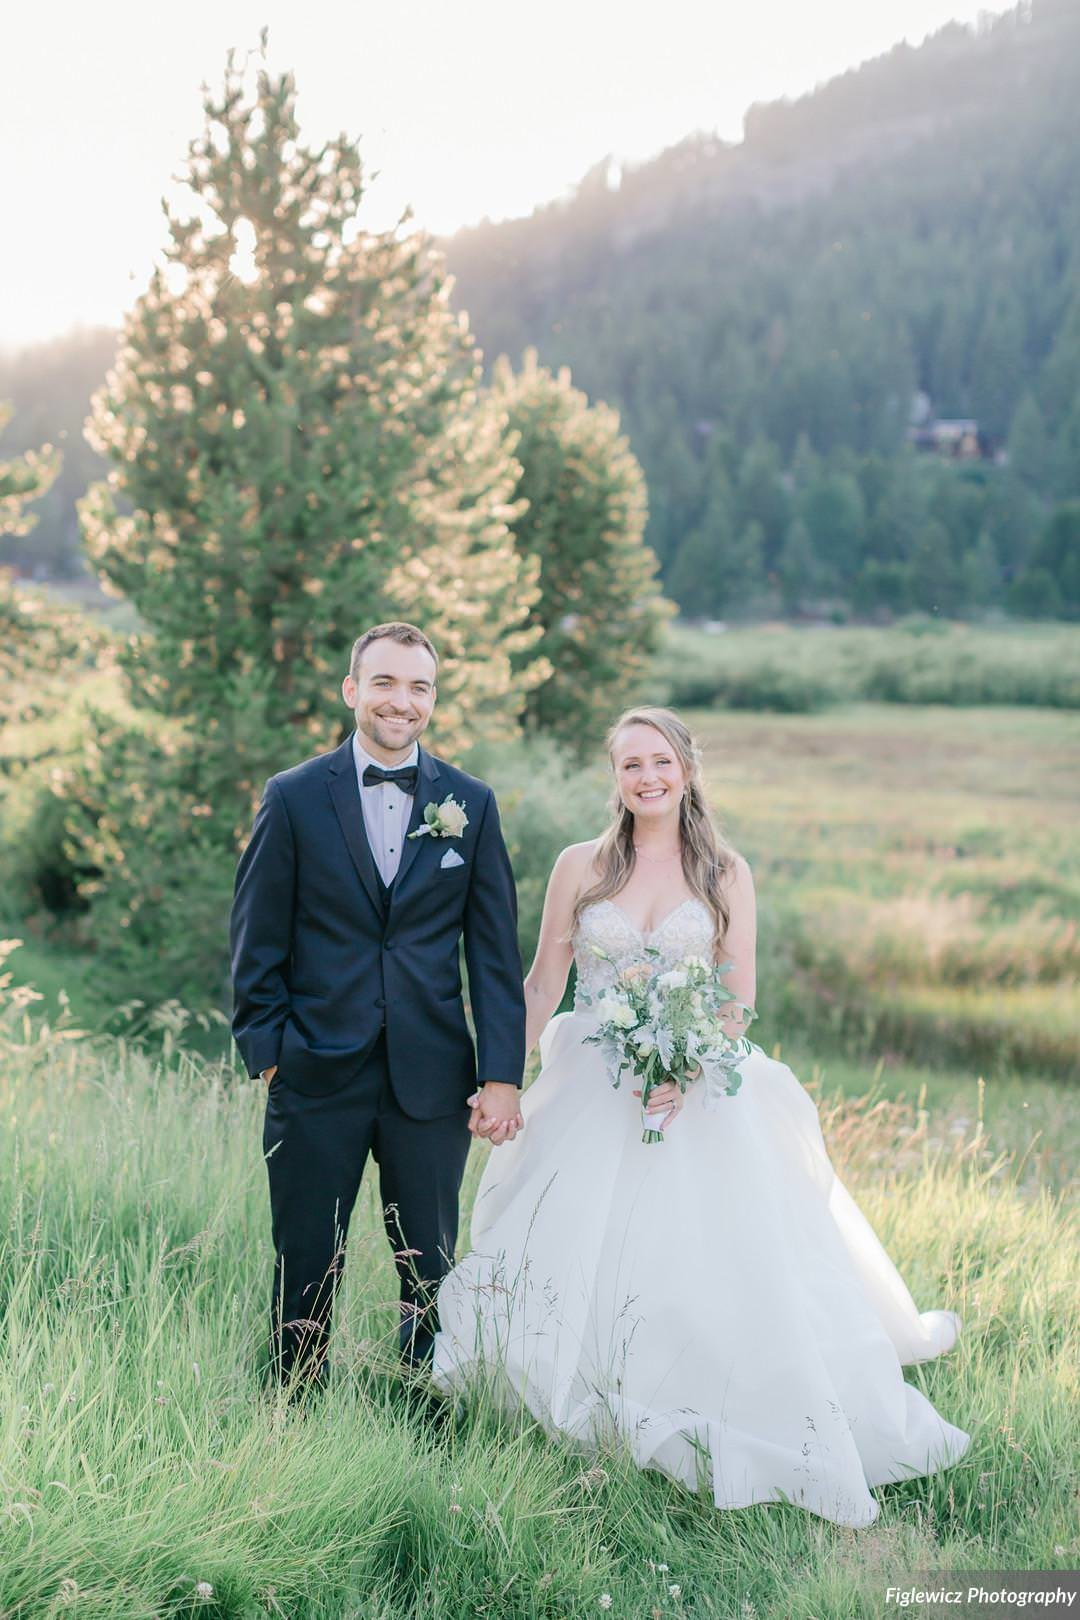 Garden_Tinsley_FiglewiczPhotography_LakeTahoeWeddingSquawValleyCreekTaylorBrendan00141_big